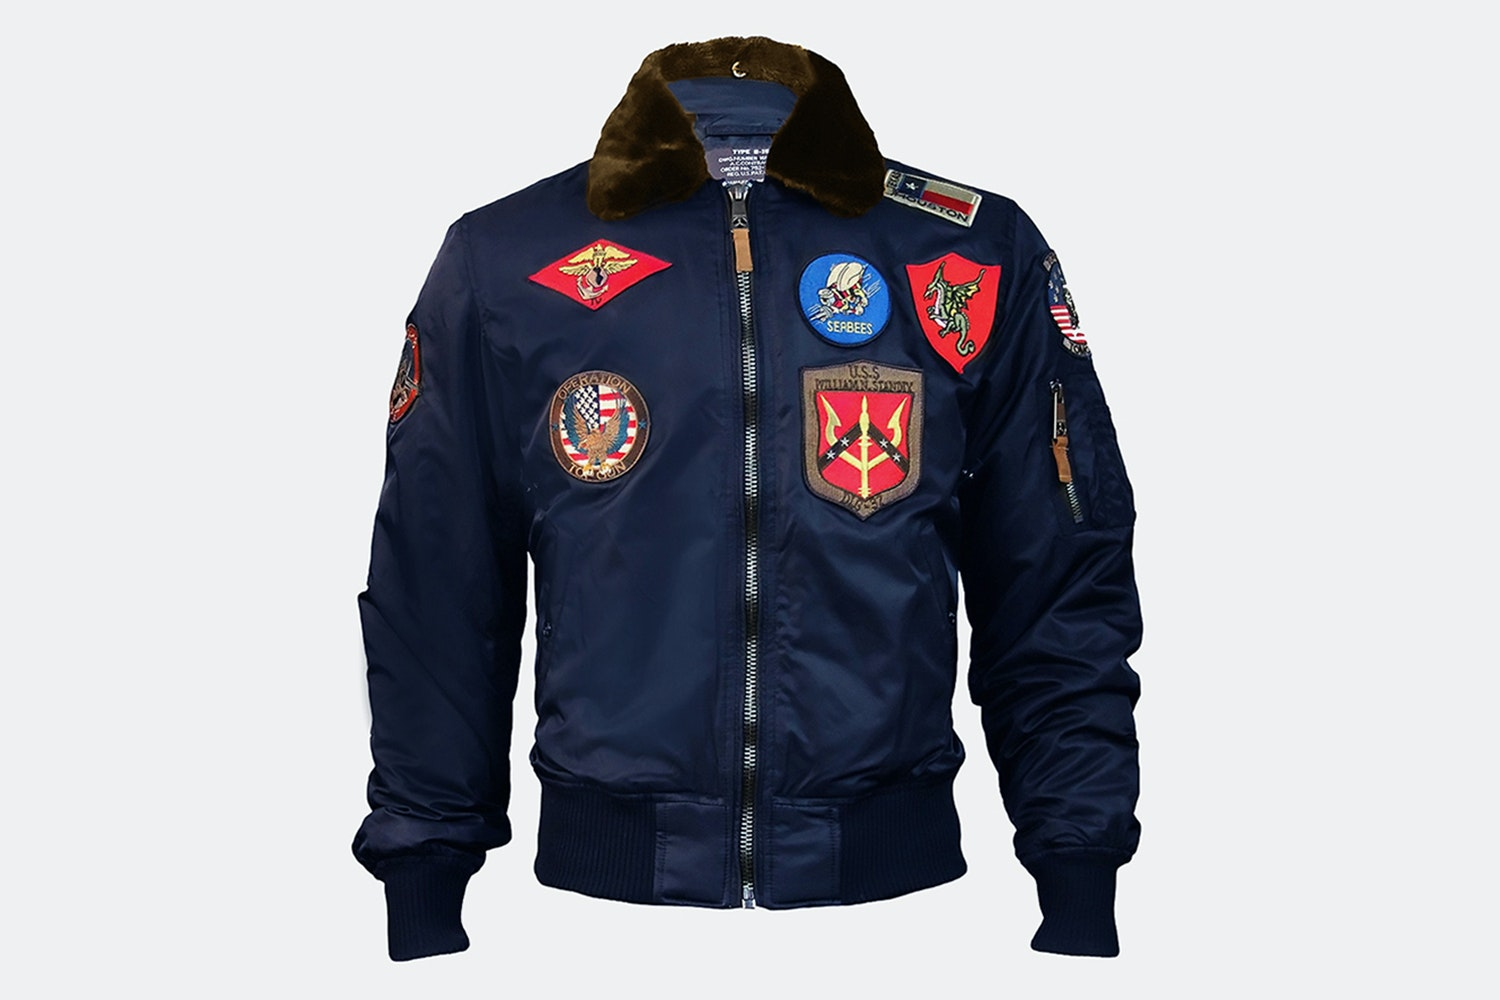 B-15 Flight Bomber Jacket with Patches  - Navy - S (+$15)